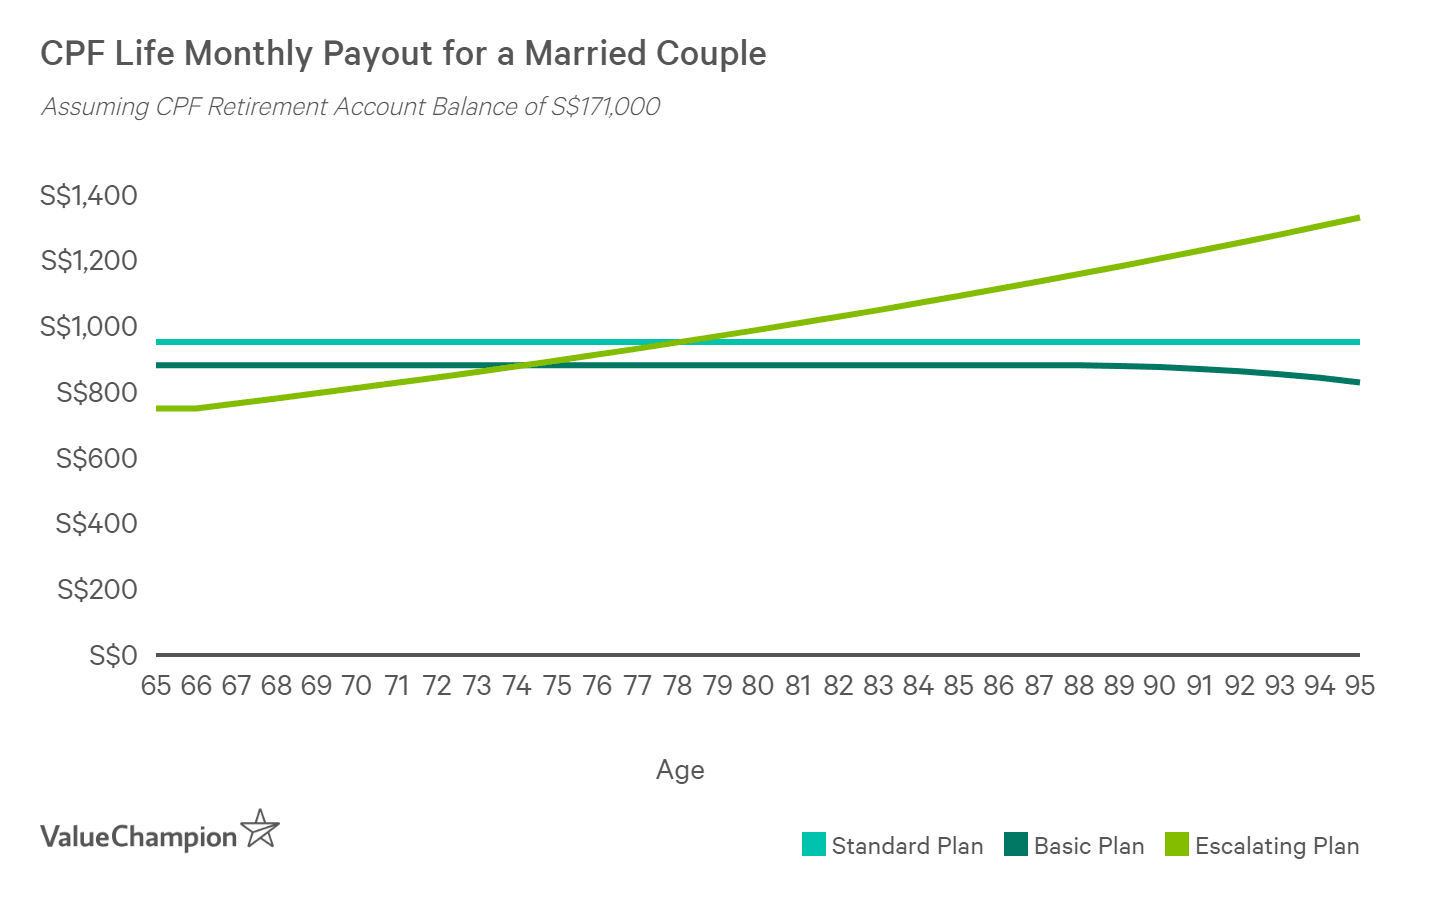 A married couple with S$171,000 in their CPF Retirement Account can earn about S$950 per month from their CPF Life Plan